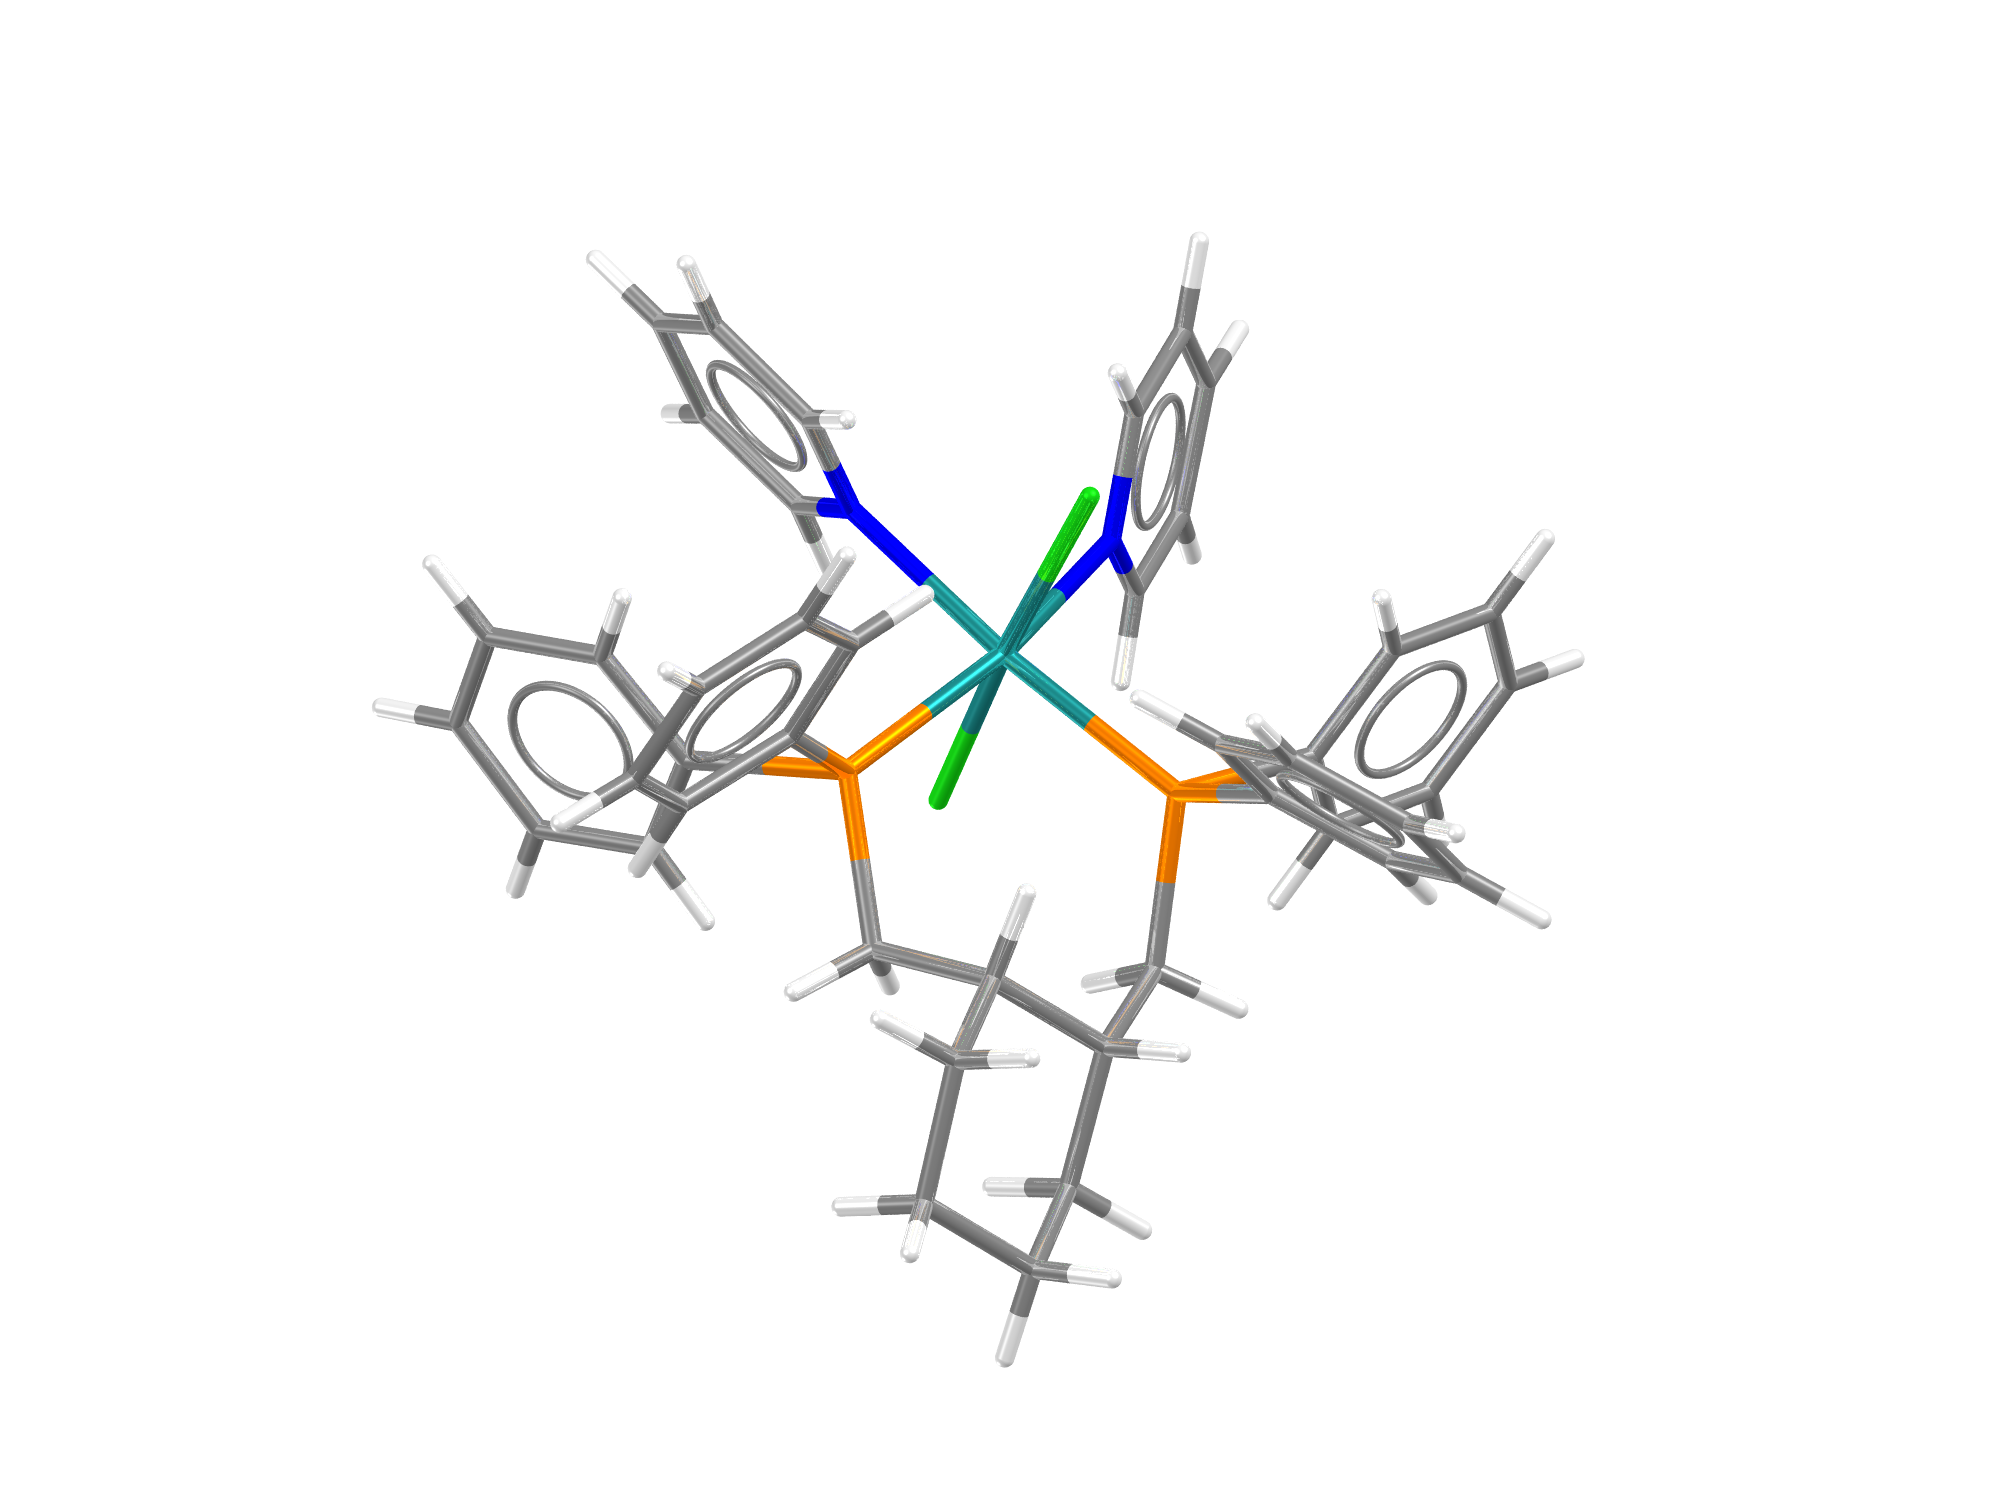 CSD Entry AHALEAD, A ruthenium complex authored by W.Clegg and R.W. Harrington and one of the 6,000+ CSD Communications added to the CSD this year.